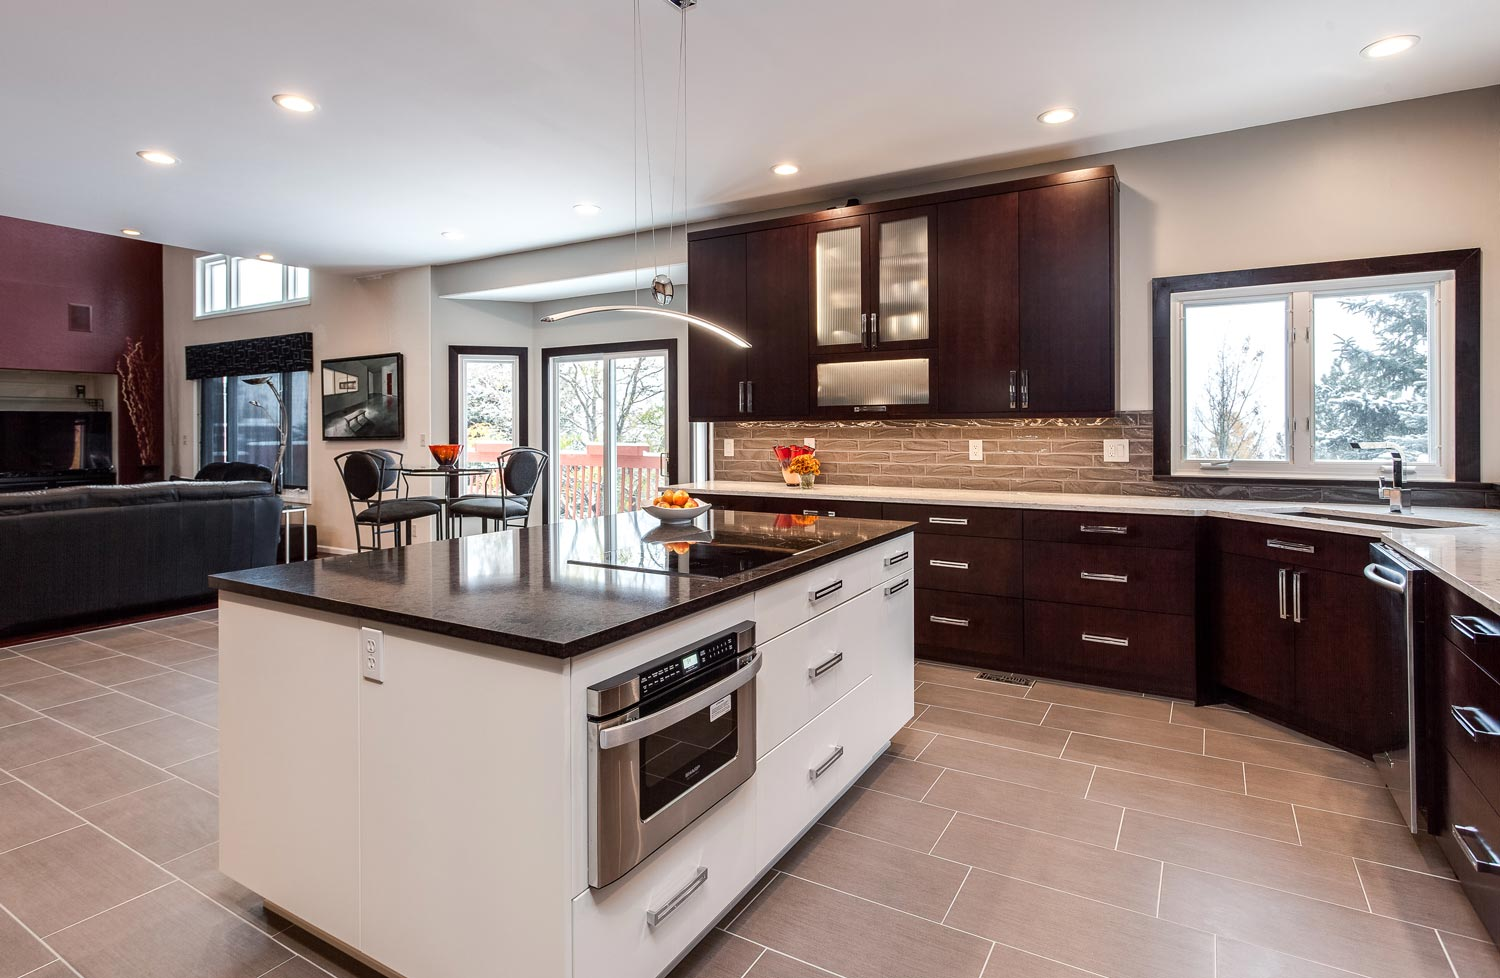 ordinary Kitchen Remodeling Lakewood Co #3: Flat Panel Full Access Cabinets throughout this spectacular renovated  kitchen in Lakewood Colorado give the homeowners more cupboard space than  they know ...